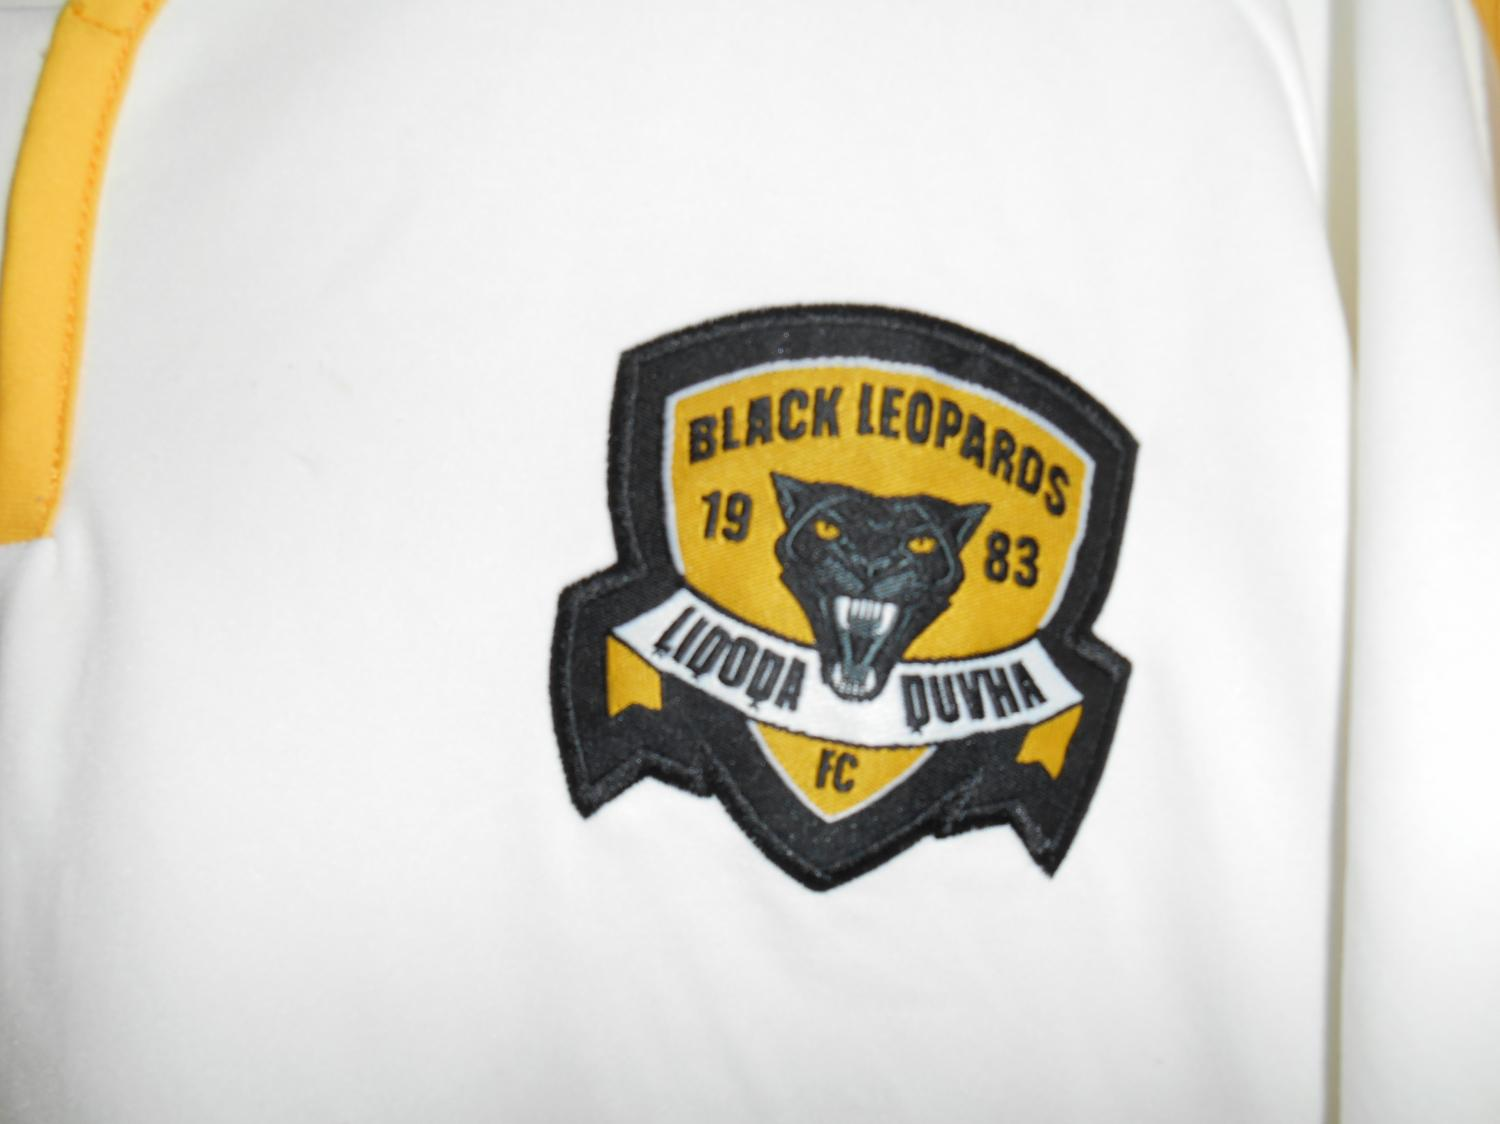 Black Leopards FC Away football shirt (unknown year). - photo#12